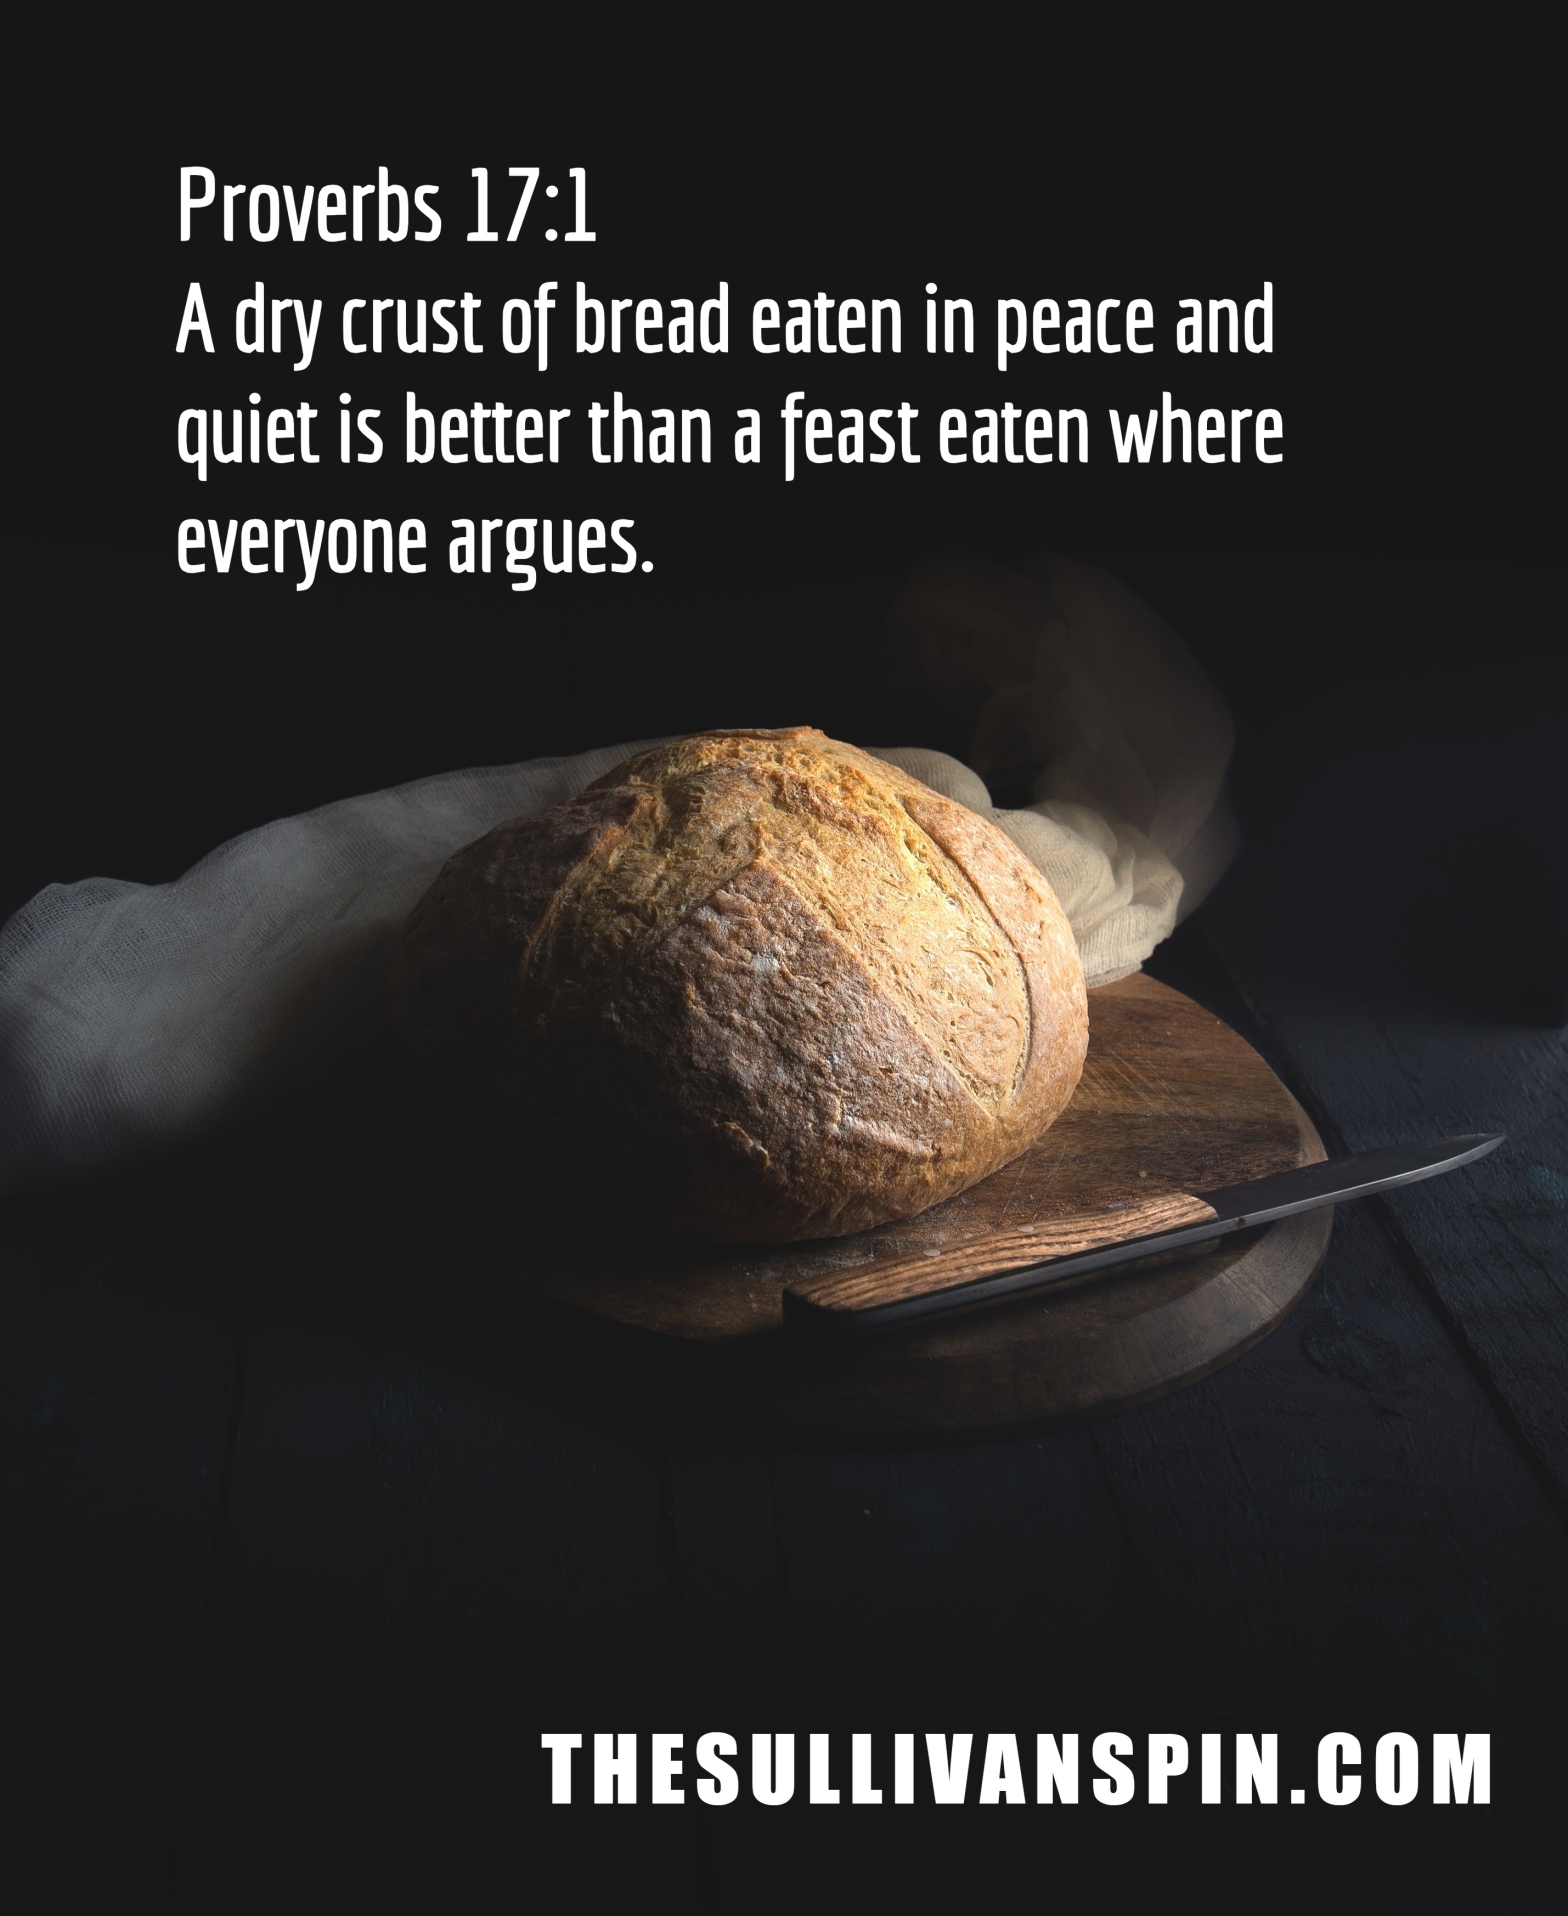 A loaf of bread enjoyed in peace.